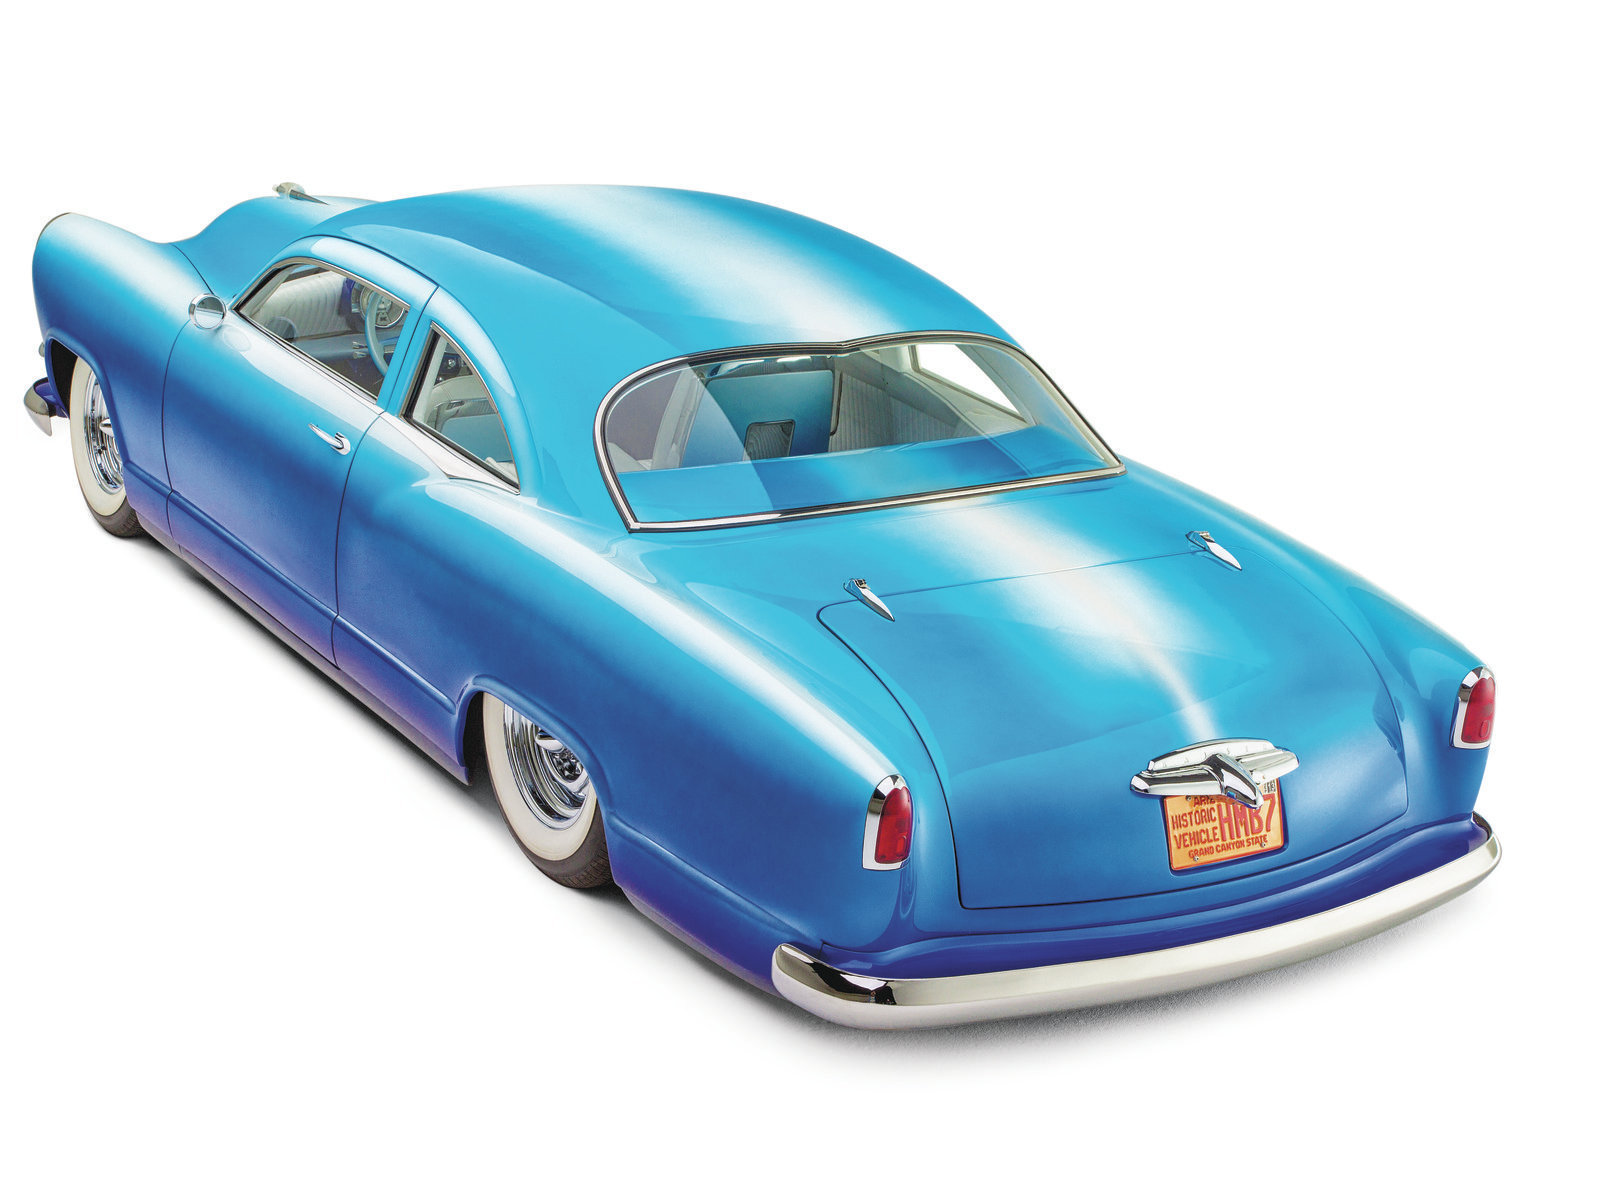 Winfield's blue fade paint continues into the interior of the Kaiser and is visible through the heart-shaped rear window. That window shape is a stock Kaiser design element, and Keith scored an N.O.S. piece of glass for his car. Because he didn't want to risk breaking it, the window is sunk down and tilted forward rather than cut to match the chopped top.